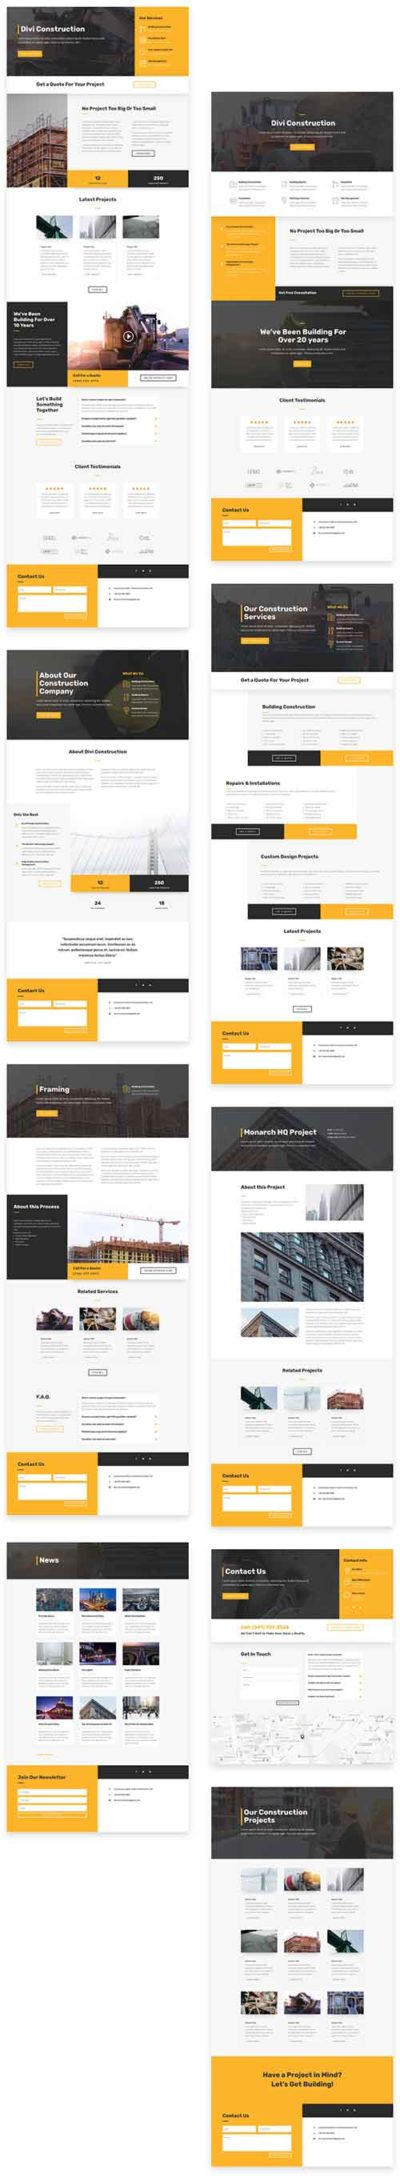 divi construction layout pack